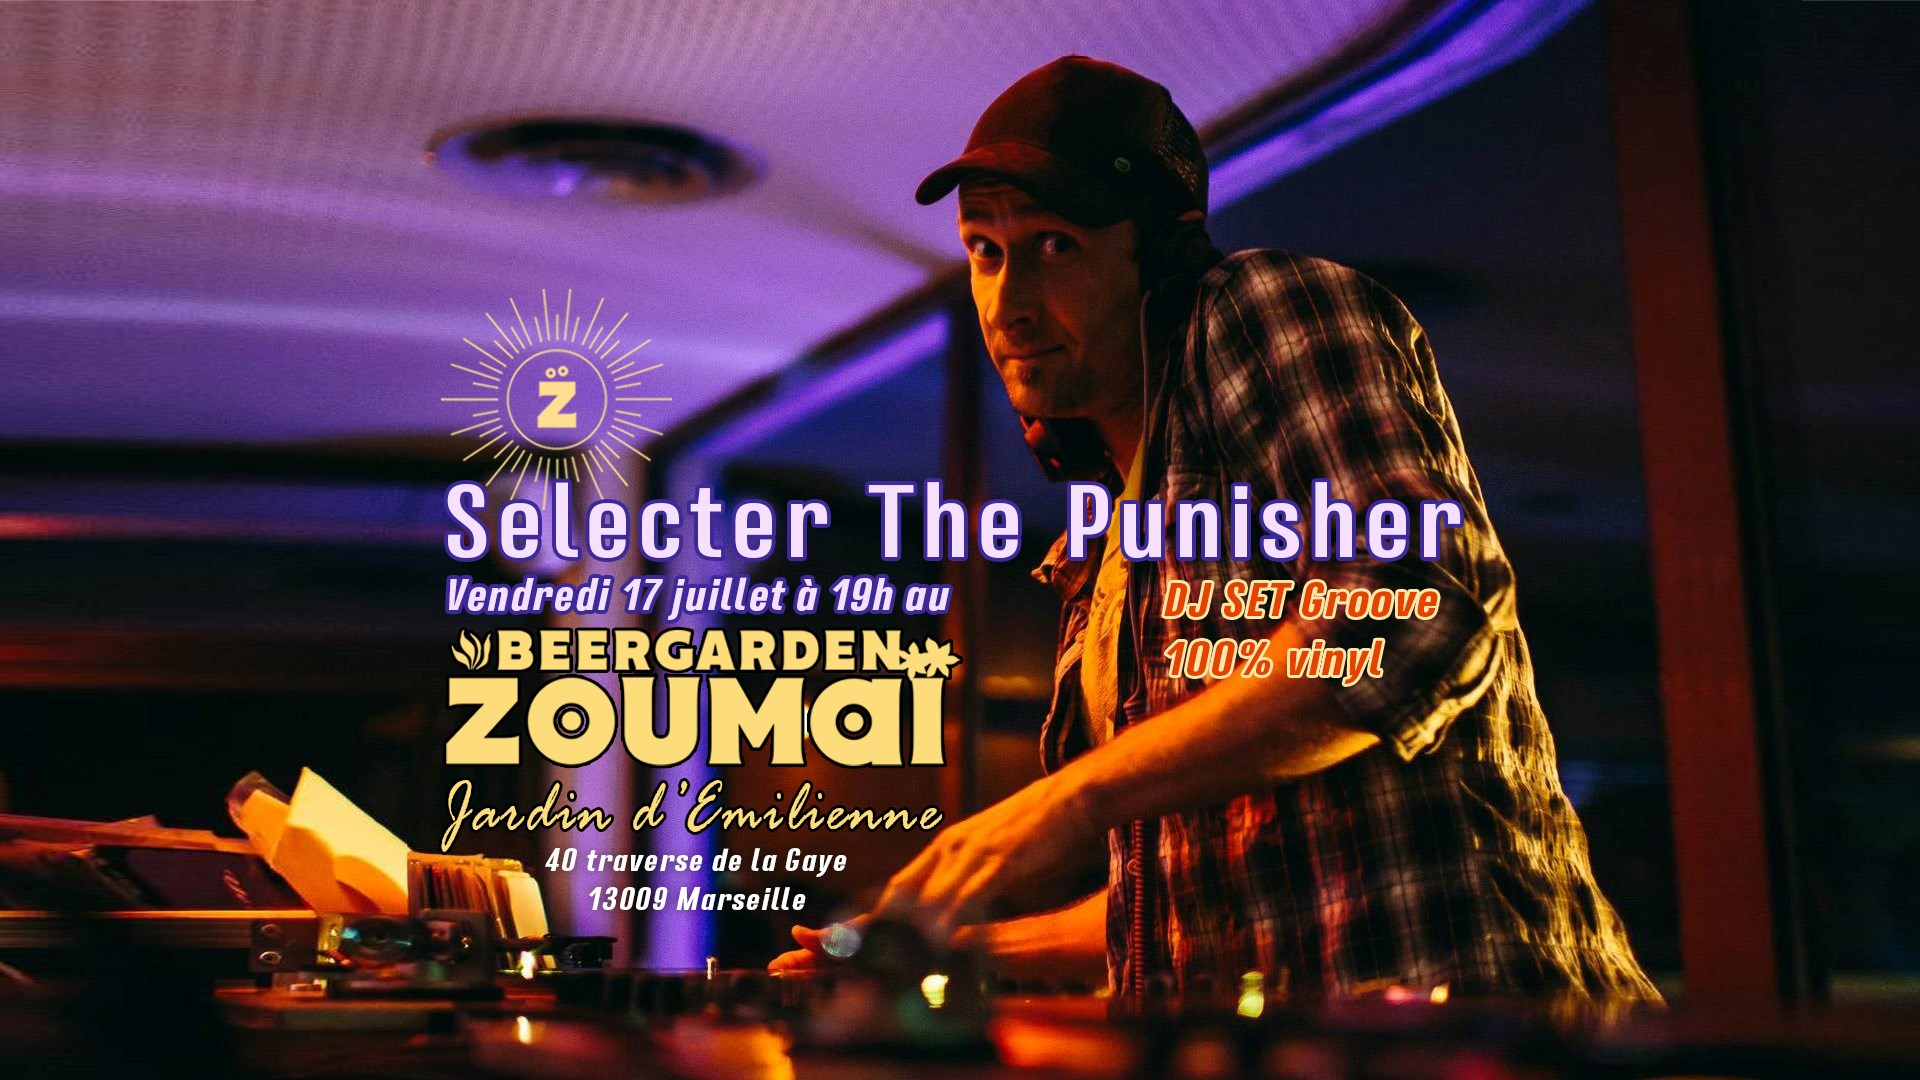 https://the-place-to-be.fr/wp-content/uploads/2020/07/soiree-djset-selecteur-the-pinisher-beergarden-zoumai-marseille-juillet-2020.jpg